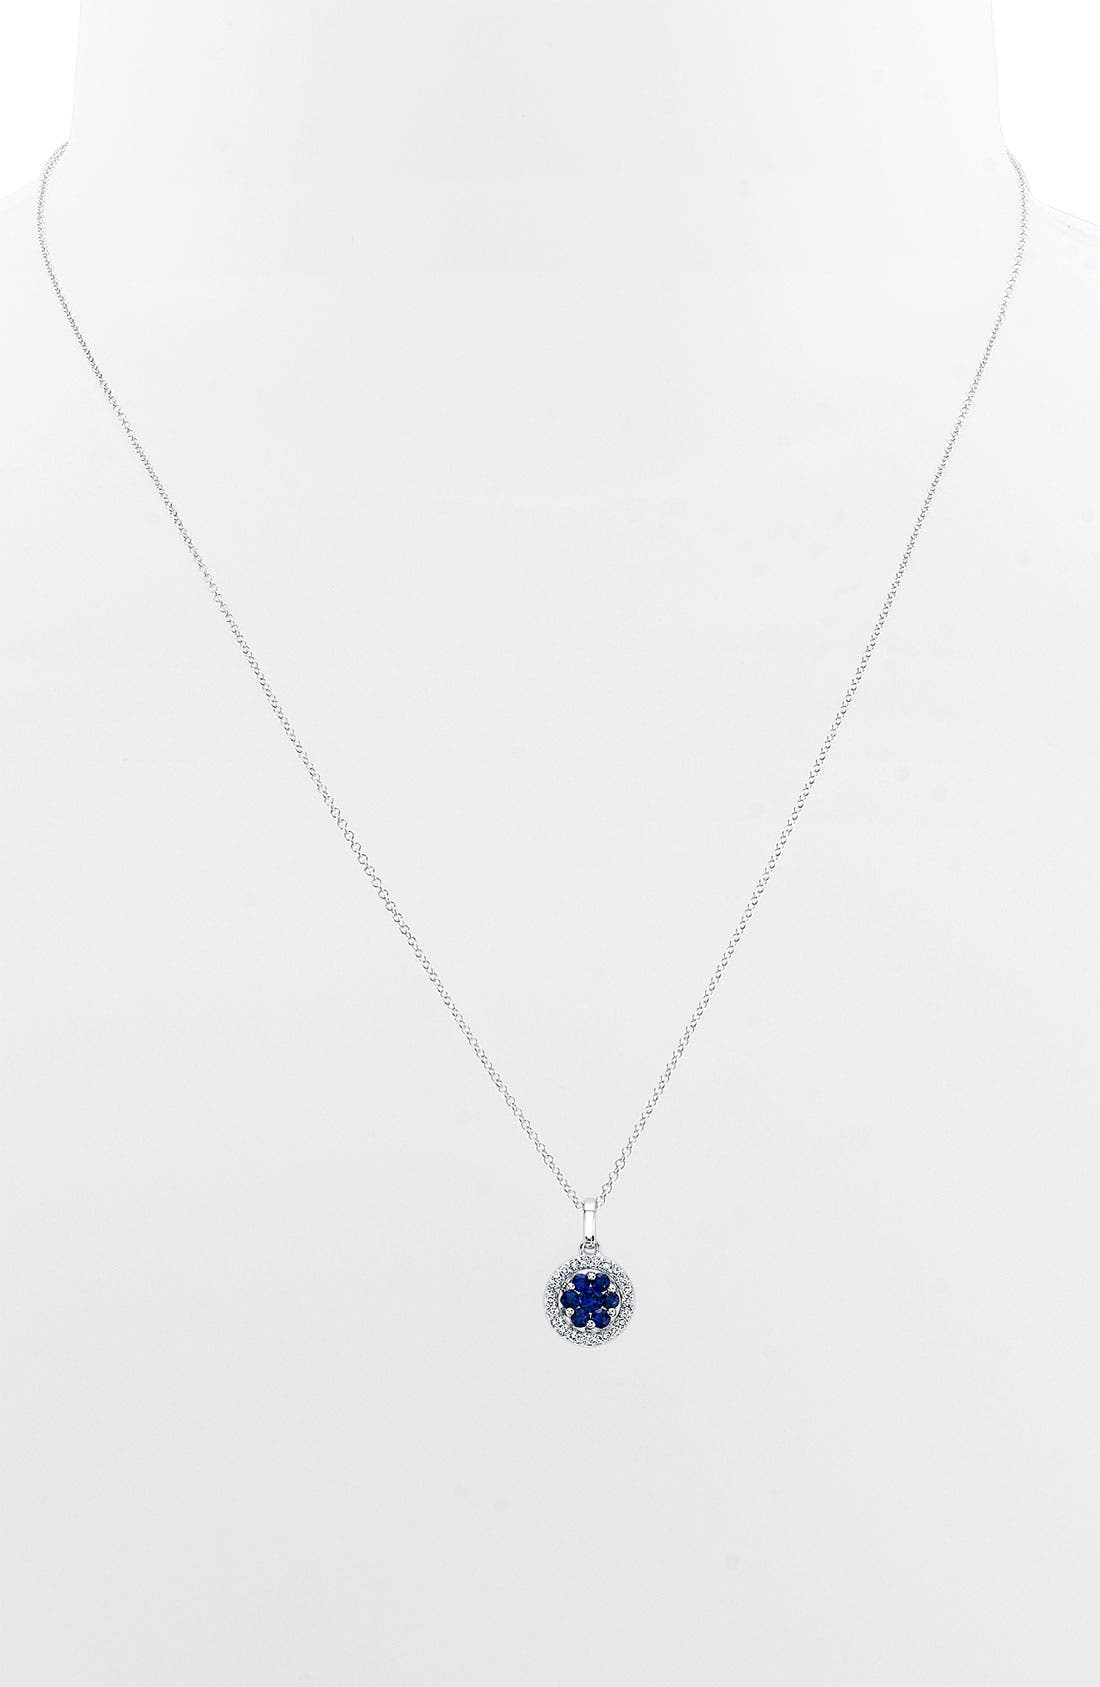 Alternate Image 1 Selected - Bony Levy Flower Button Diamond & Gemstone Pendant Necklace (Nordstrom Exclusive)